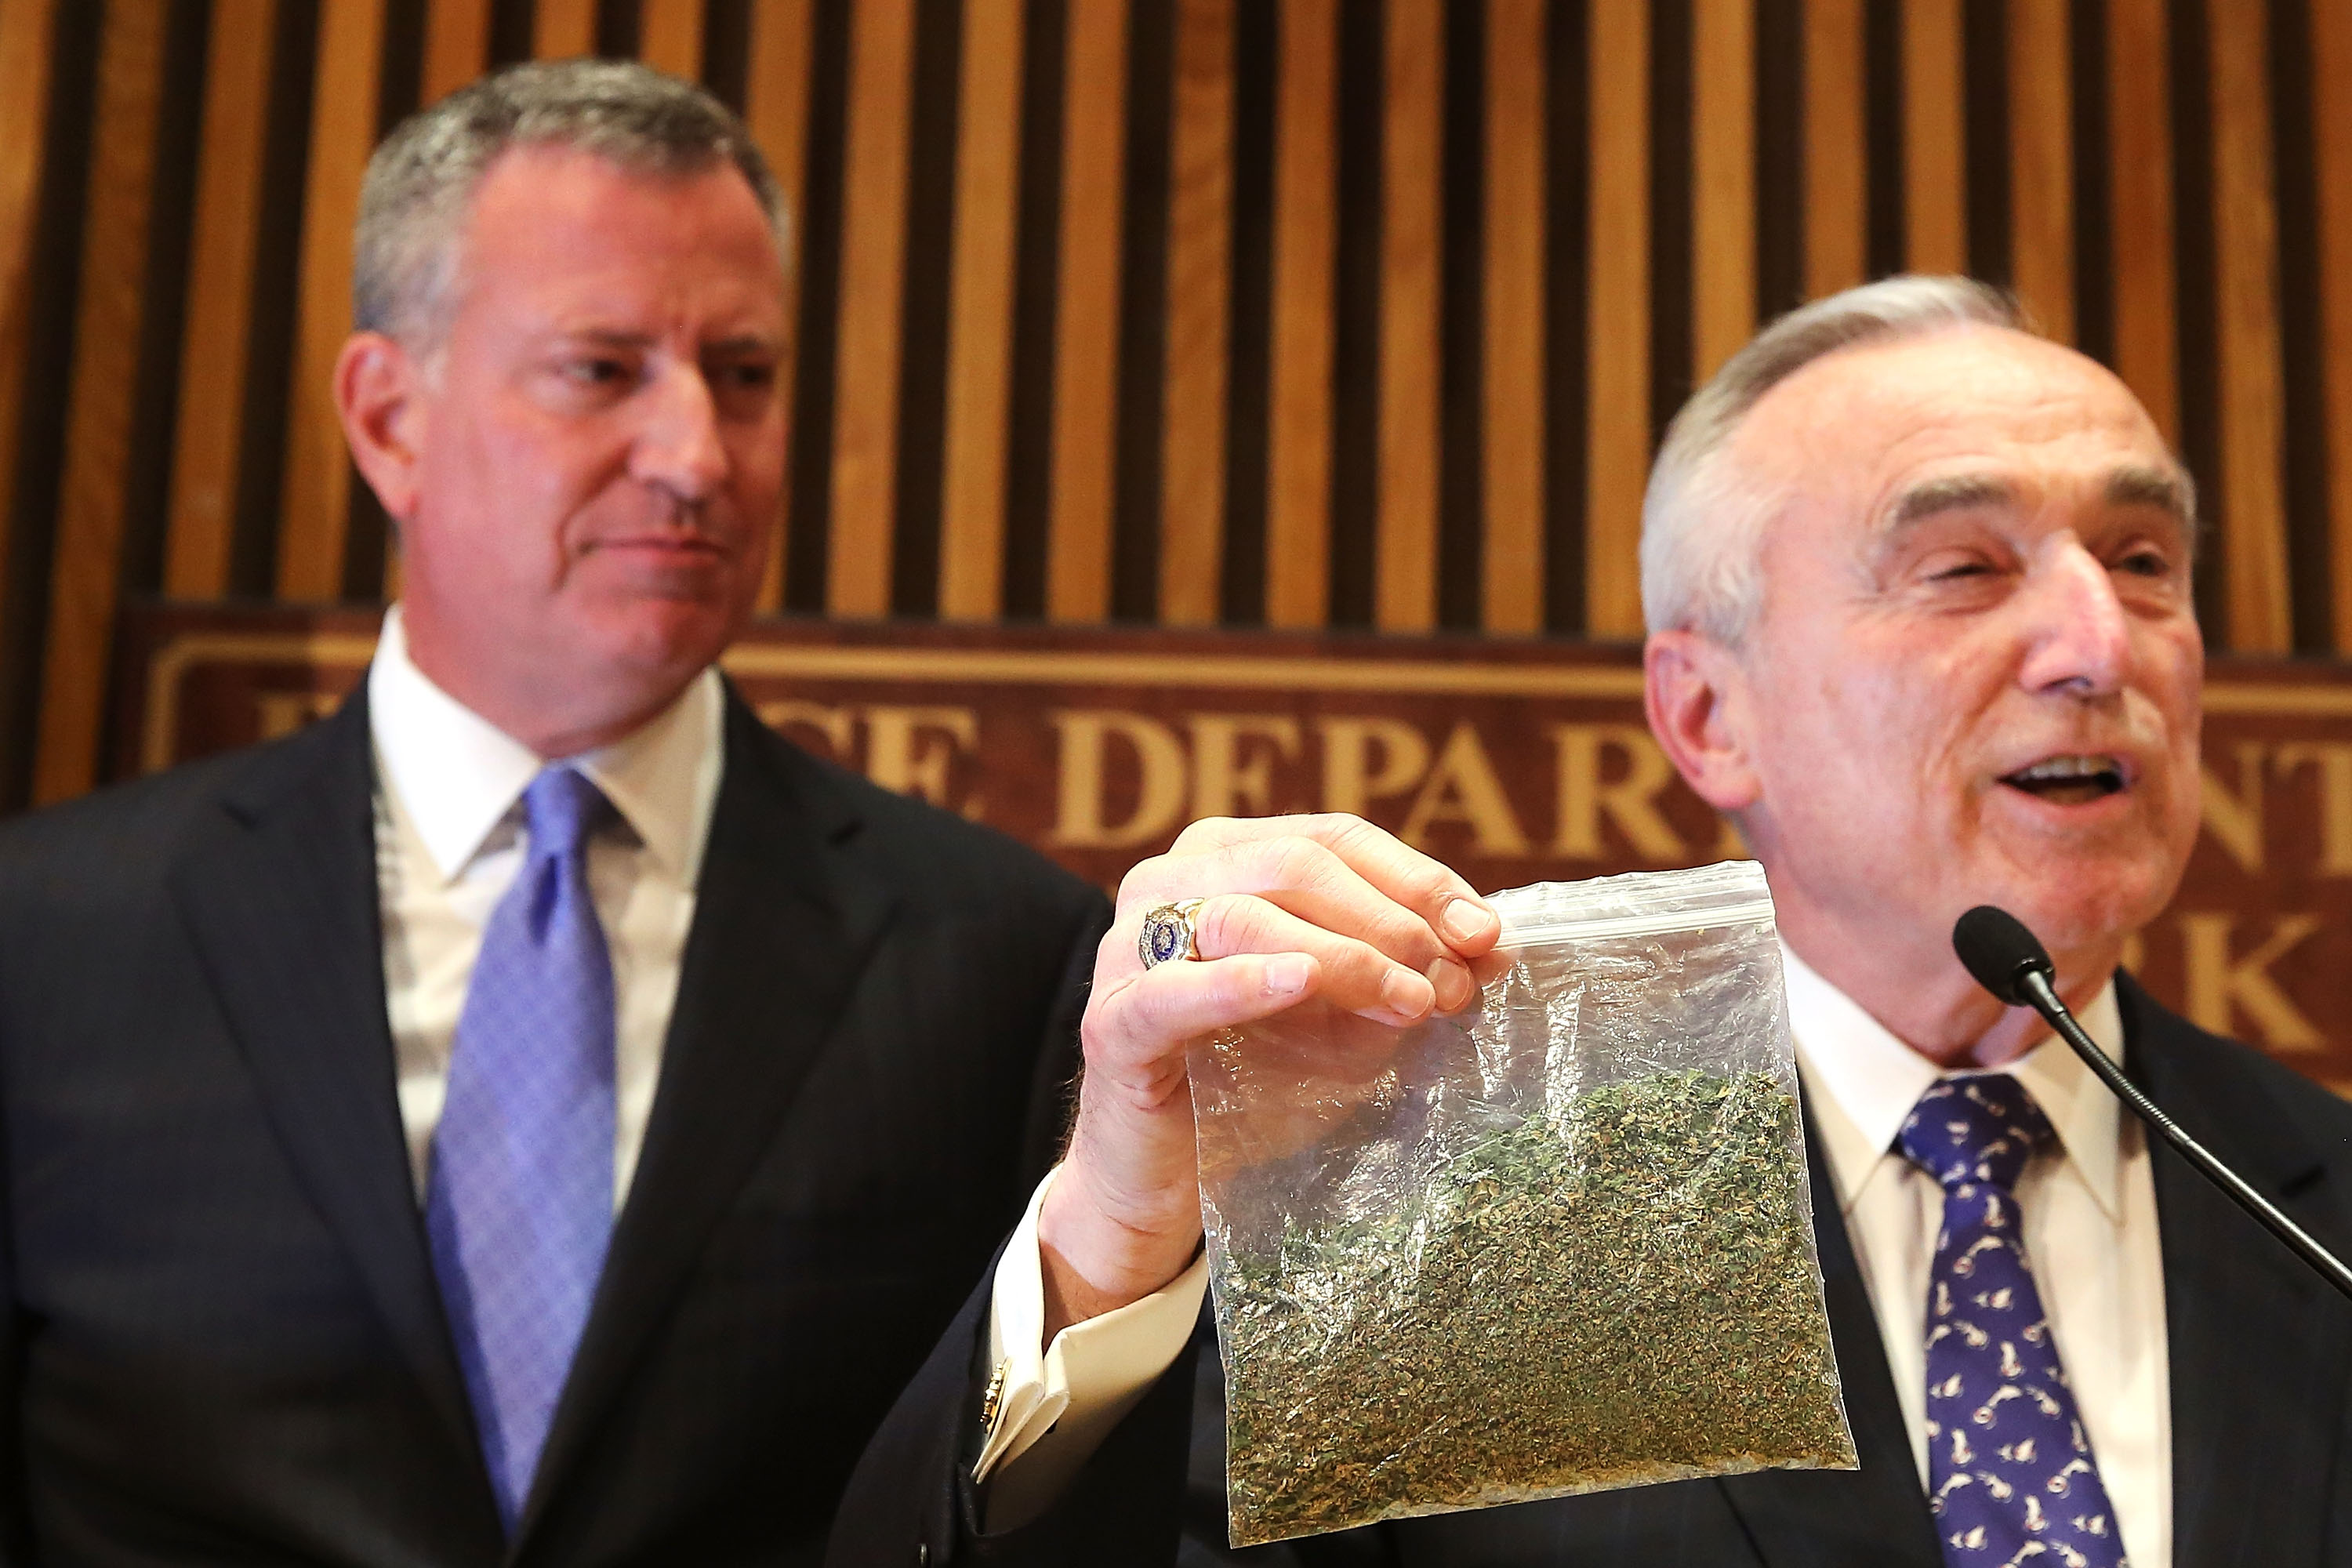 Police Commissioner Bill Bratton holds up a bag of oregano to demonstrate what 25 grams of marijuana looks like at a news conference to announce changes to New York's marijuana policy. (Photo by Spencer Platt/Getty Images)